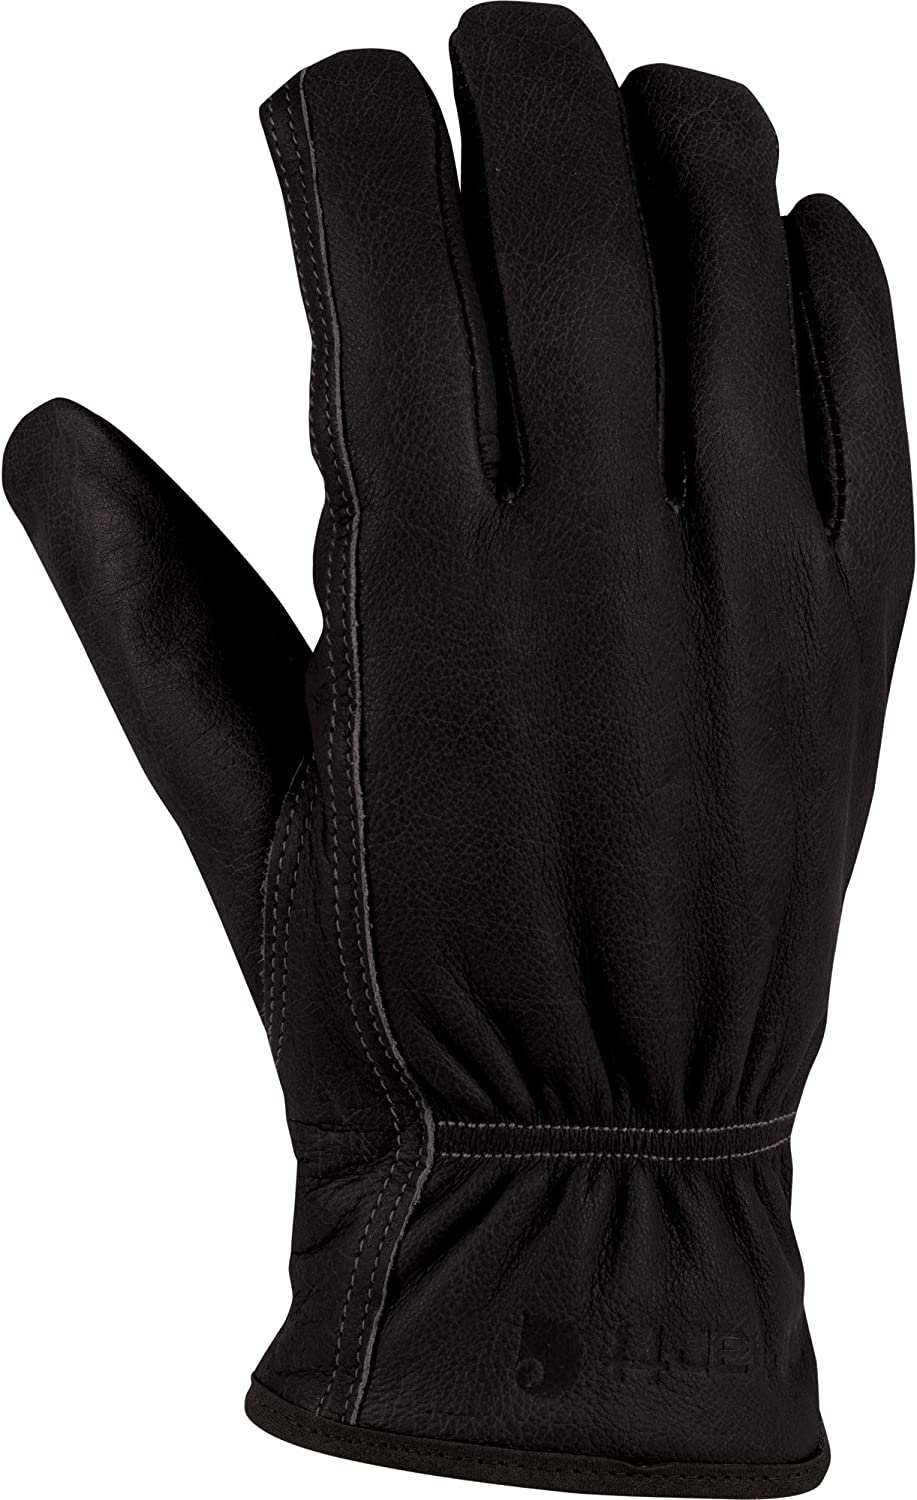 Carhartt Men's Insulated System 5 Driver Work Glove